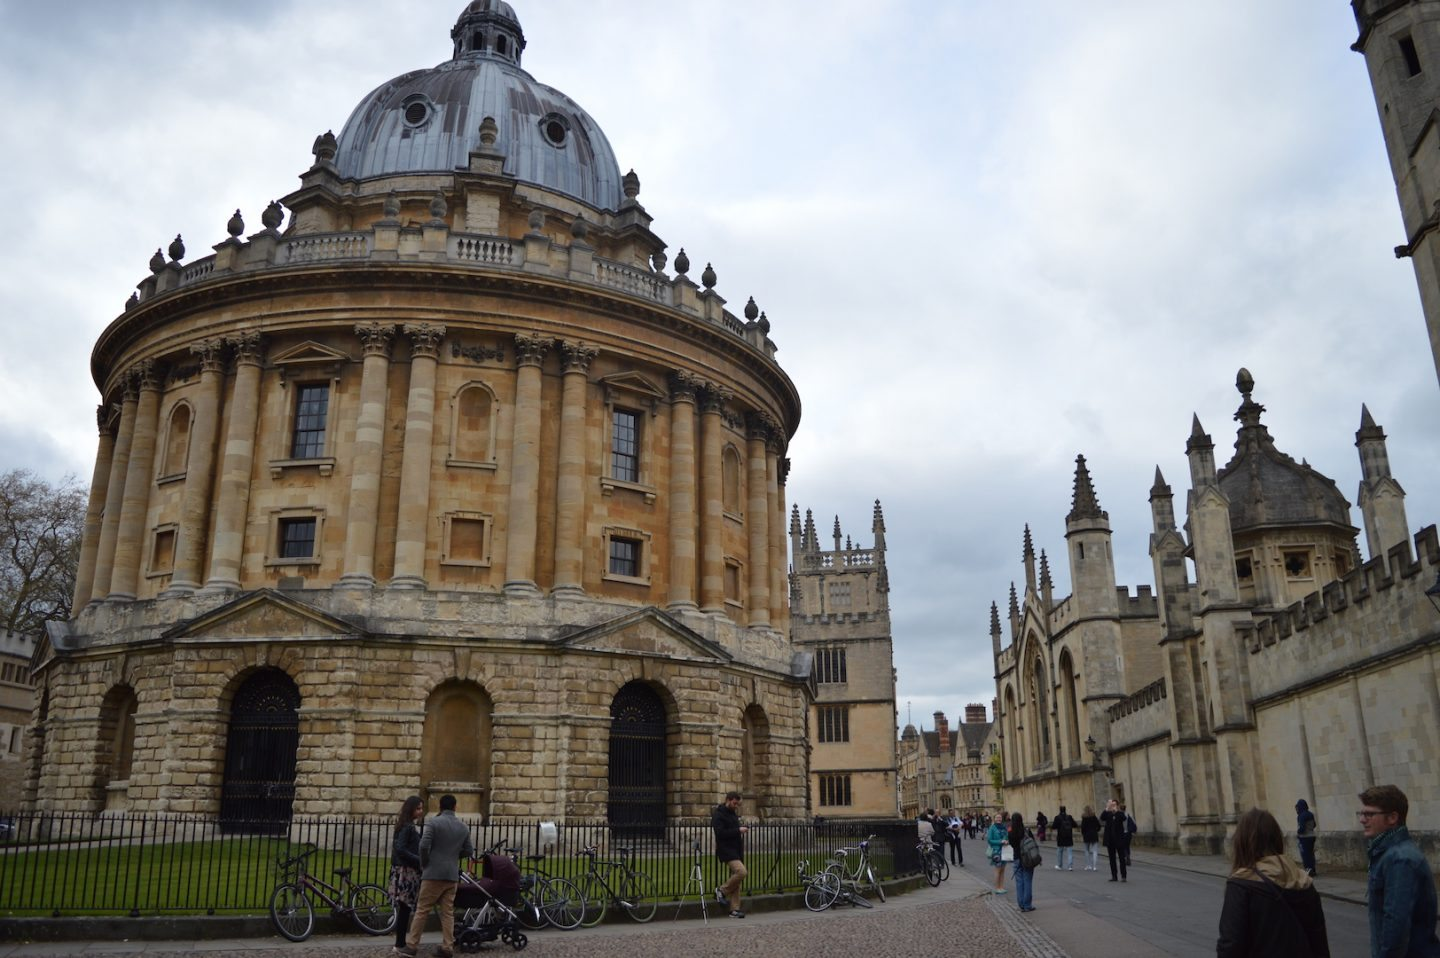 A walking tour of Oxford's Colleges